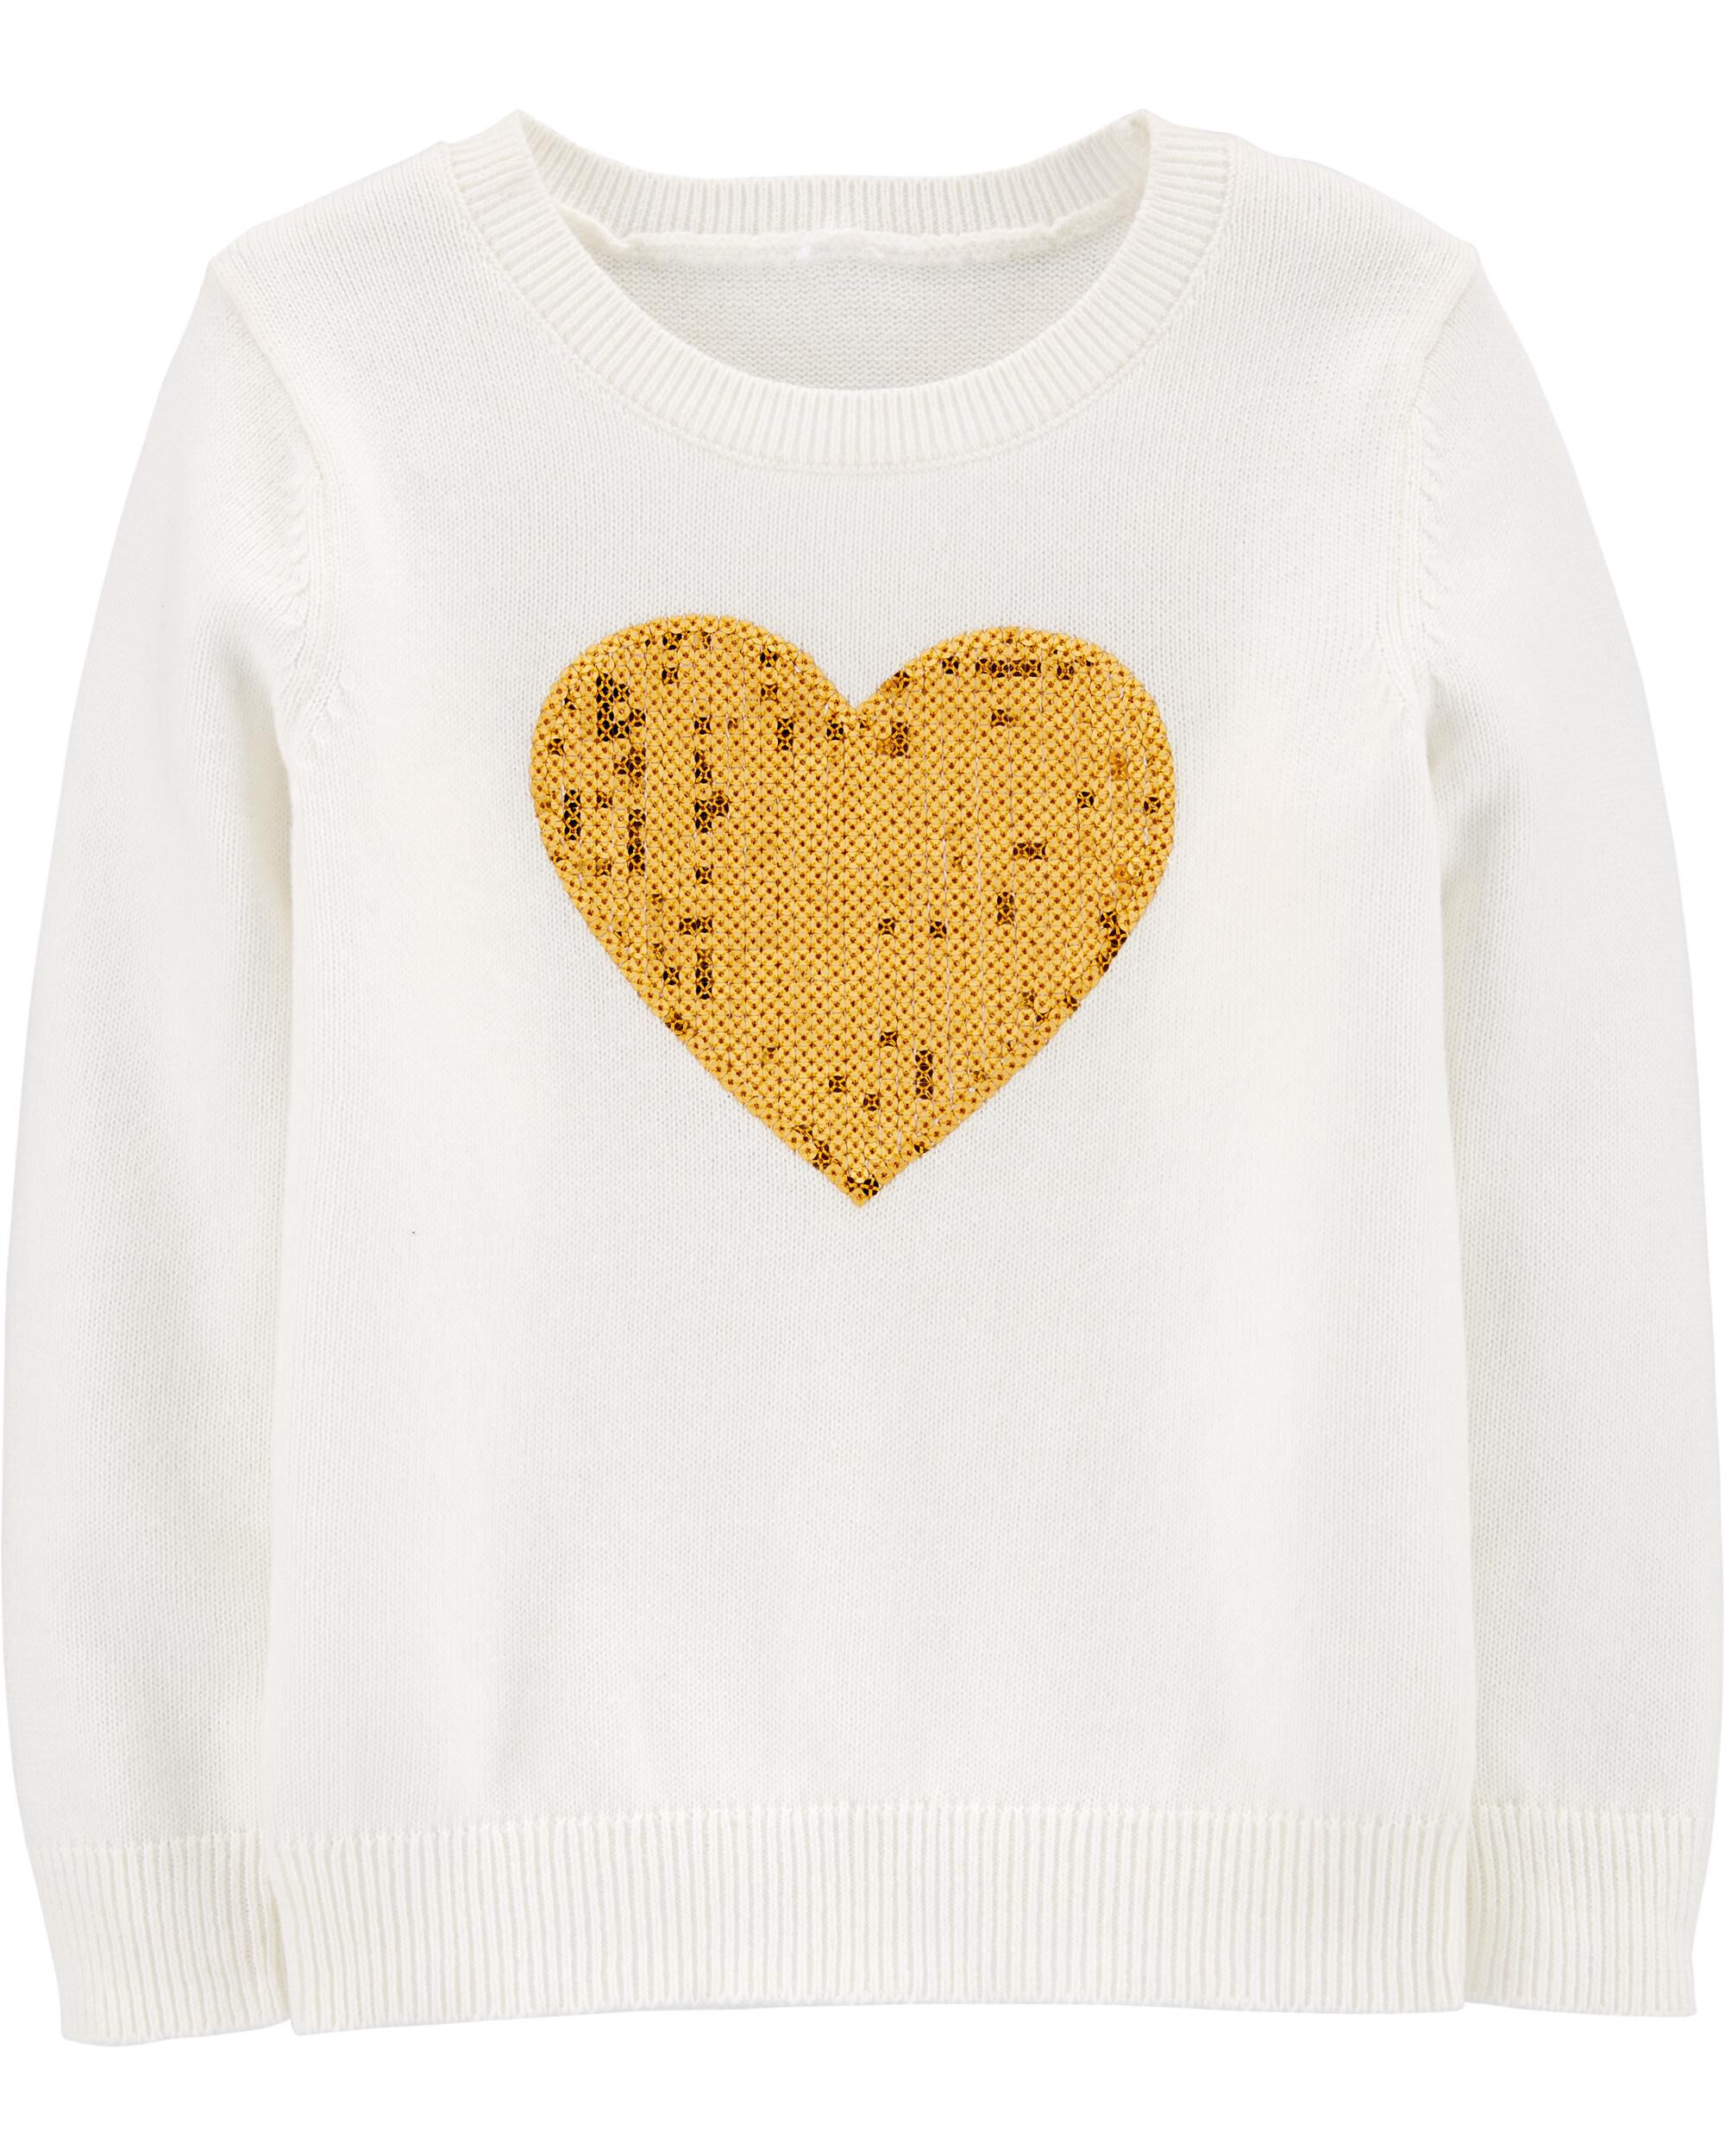 *Clearance*  Sequin Heart Sweater